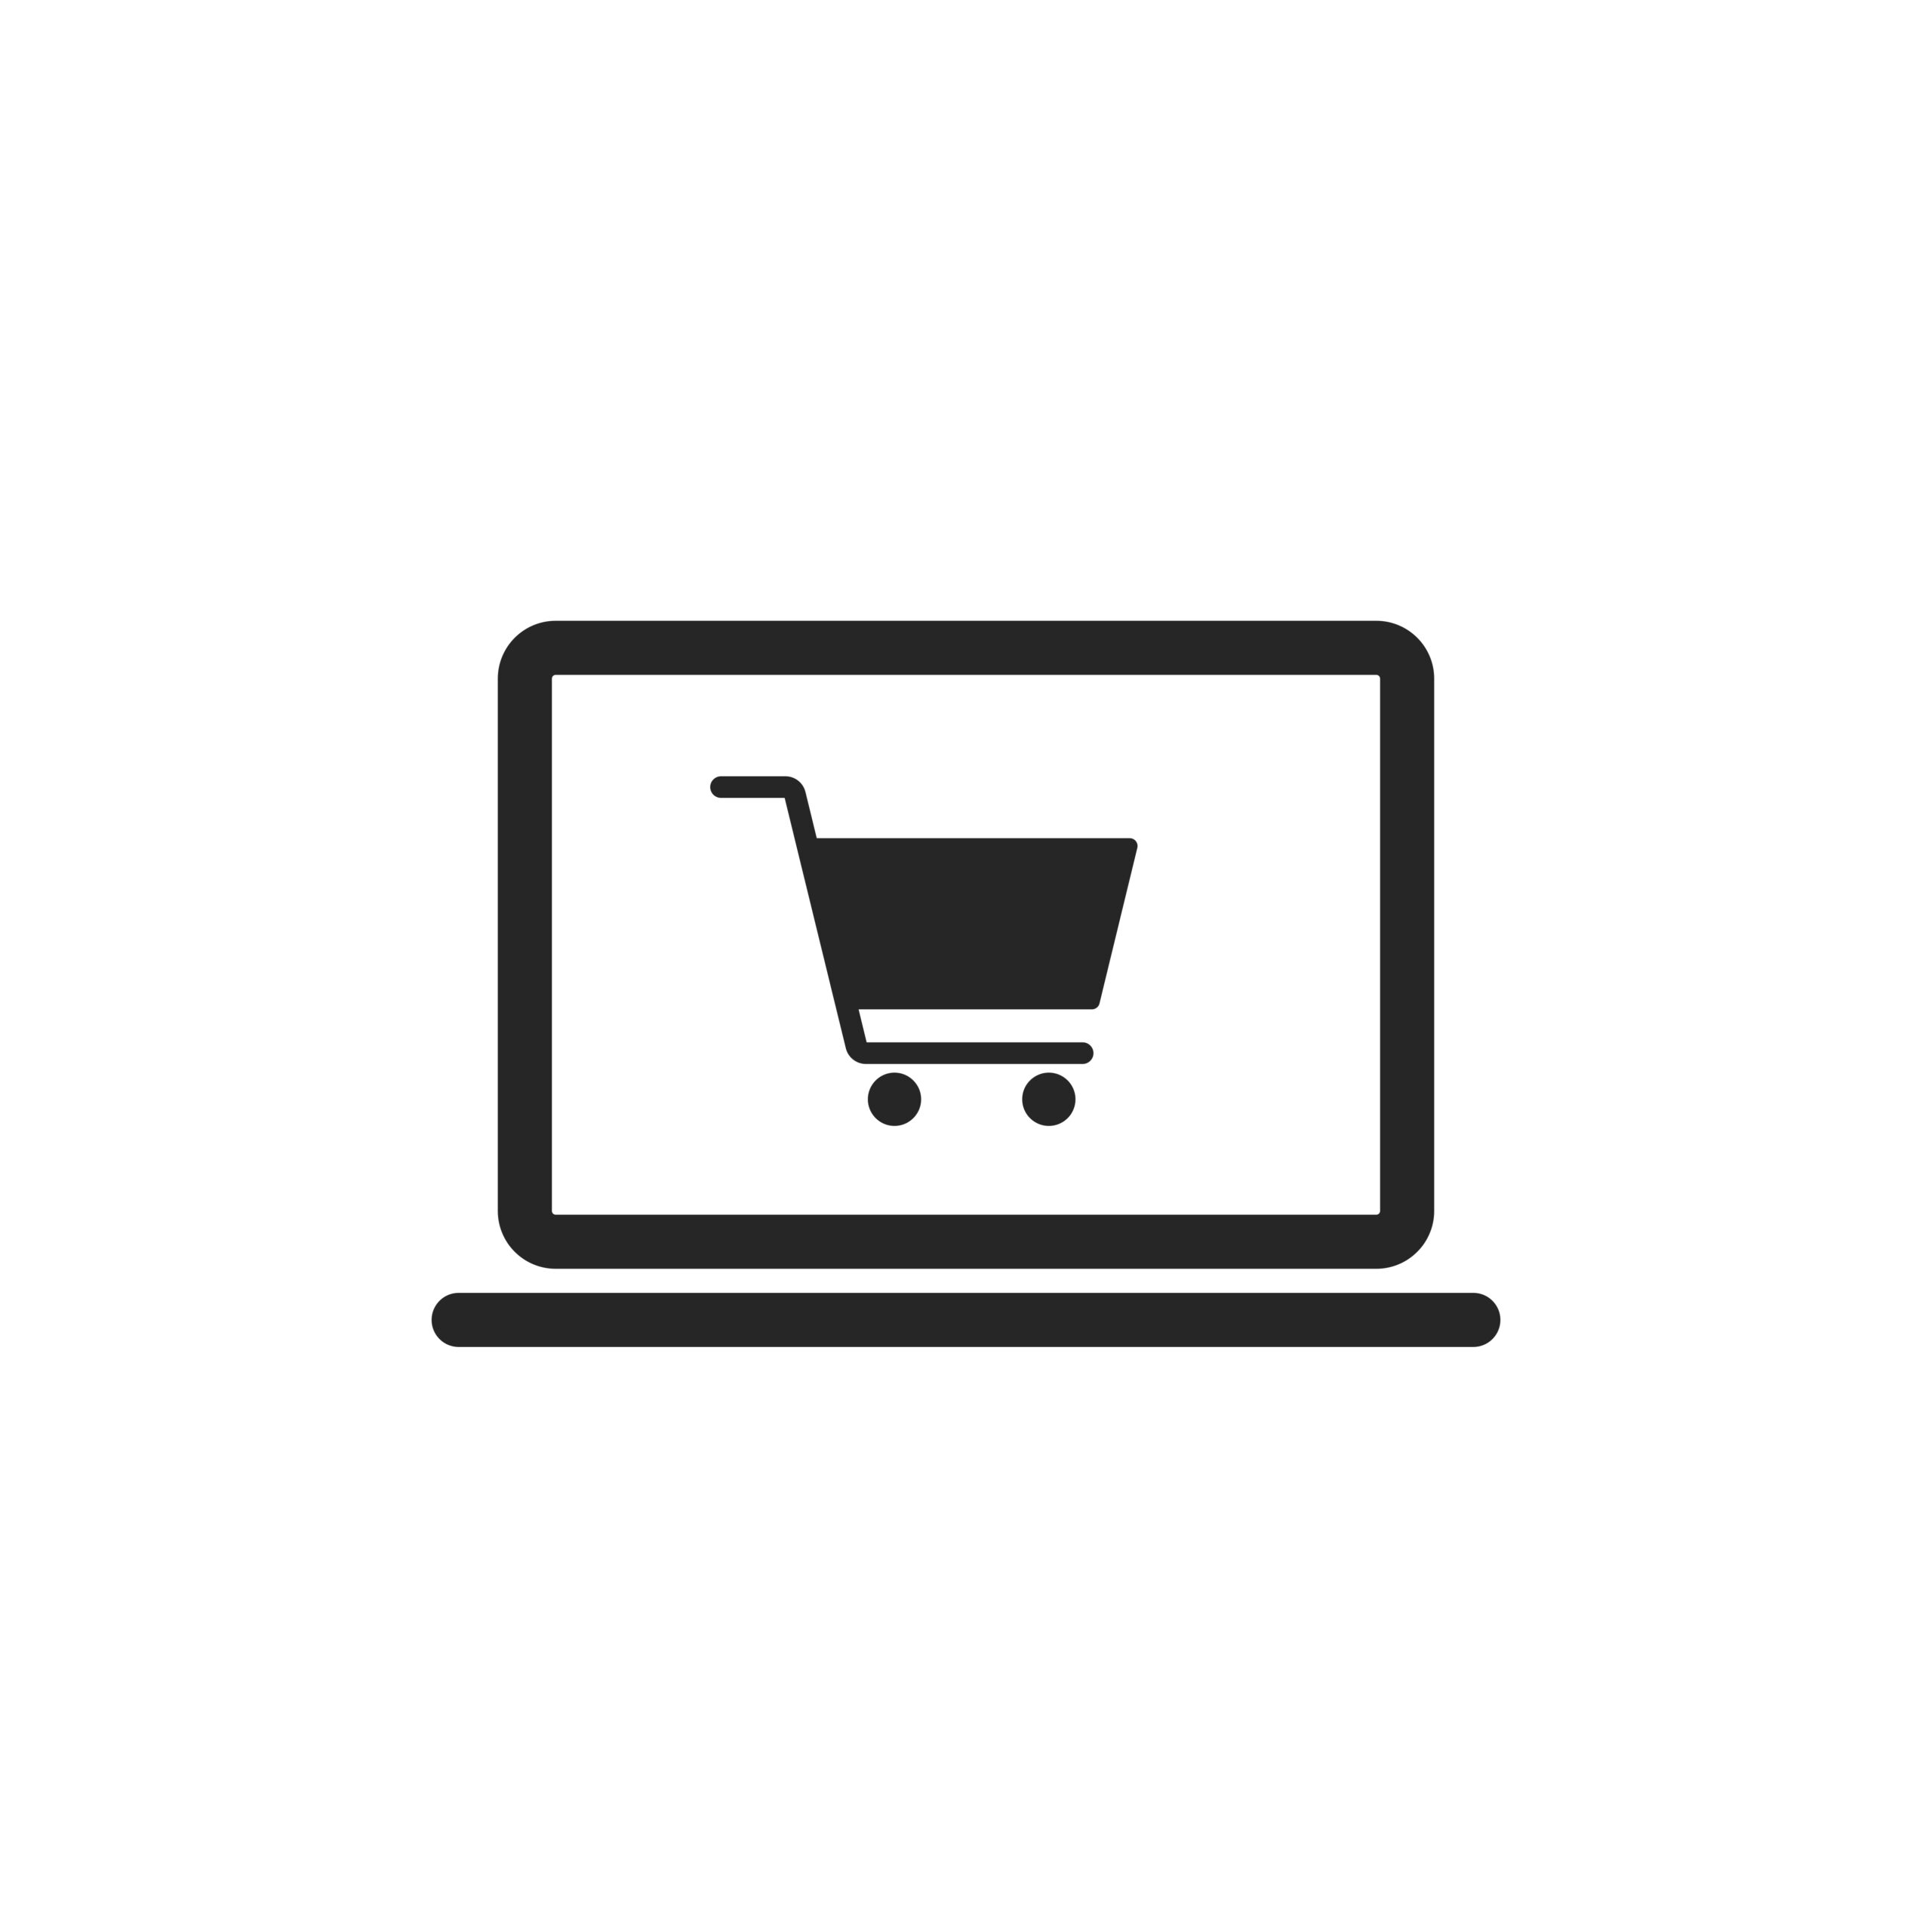 bigstock-Online-Shop-Icon-Vector-With-L-397738634